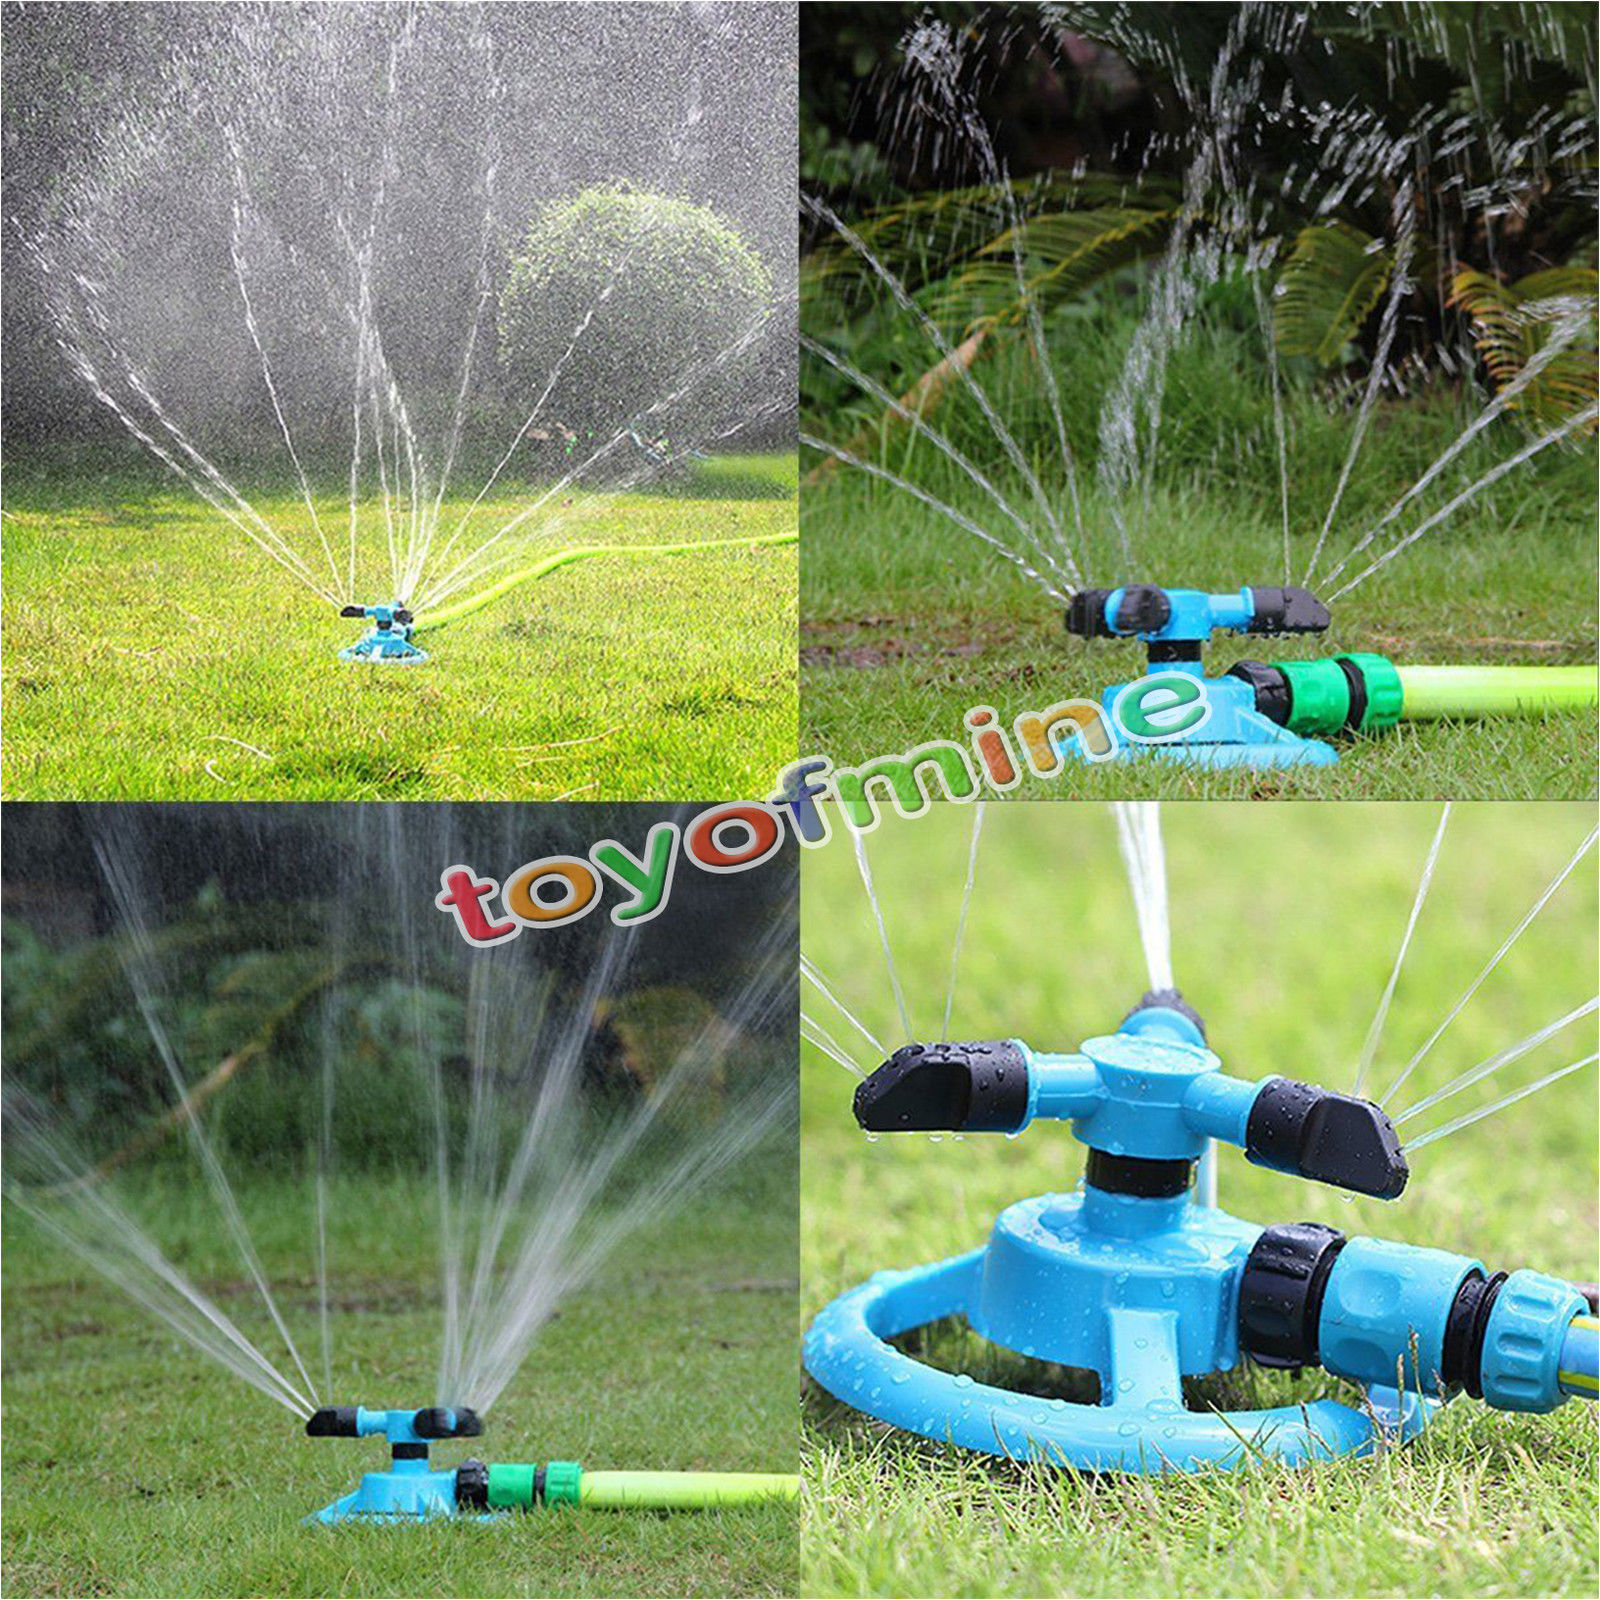 360 Degree Fully Rotating Water Sprinkler 3 Nozzles Garden Pipe Hose Irrigation Spray Grass Lawn